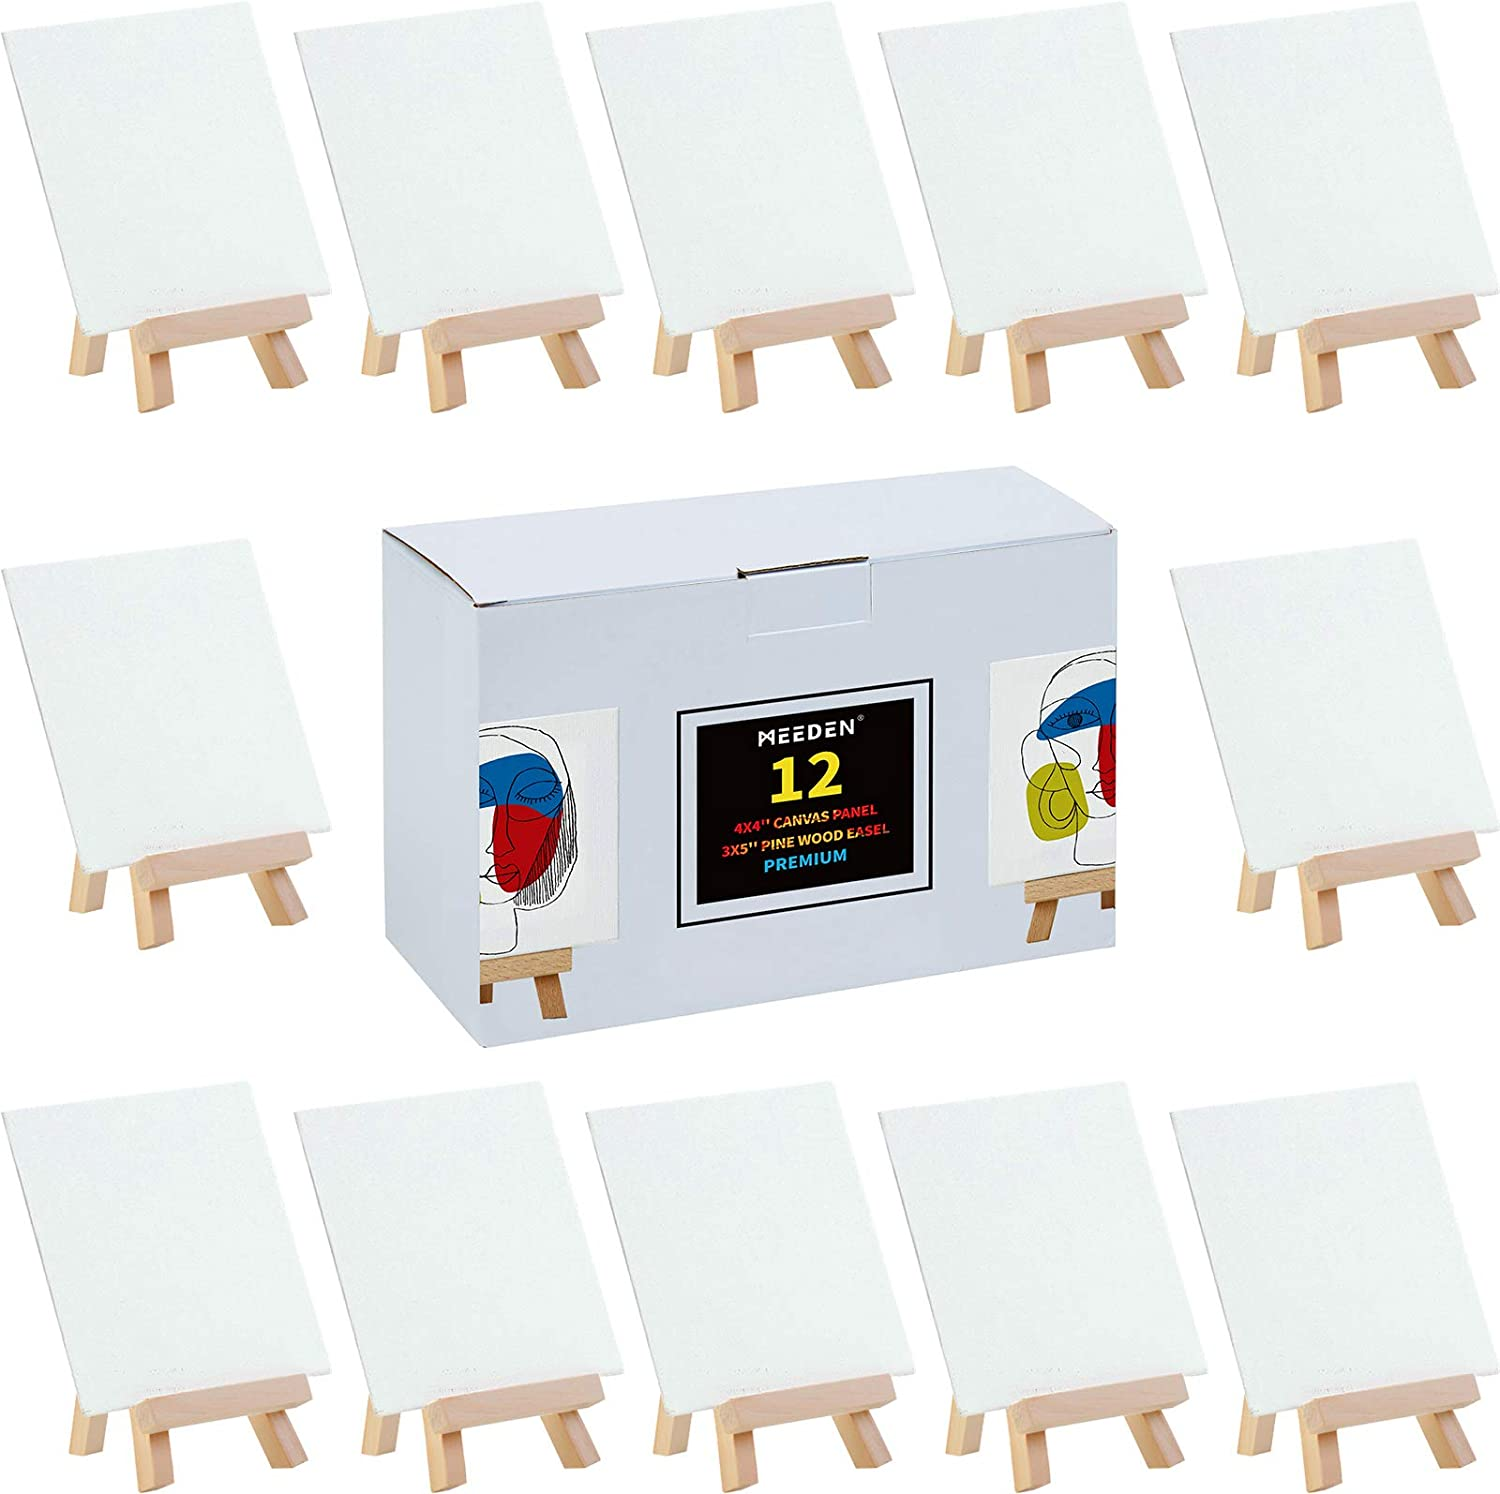 MEEDEN Limited price Mini Canvases with Discount mail order Easels 12 x Canvas Inch Pack 4